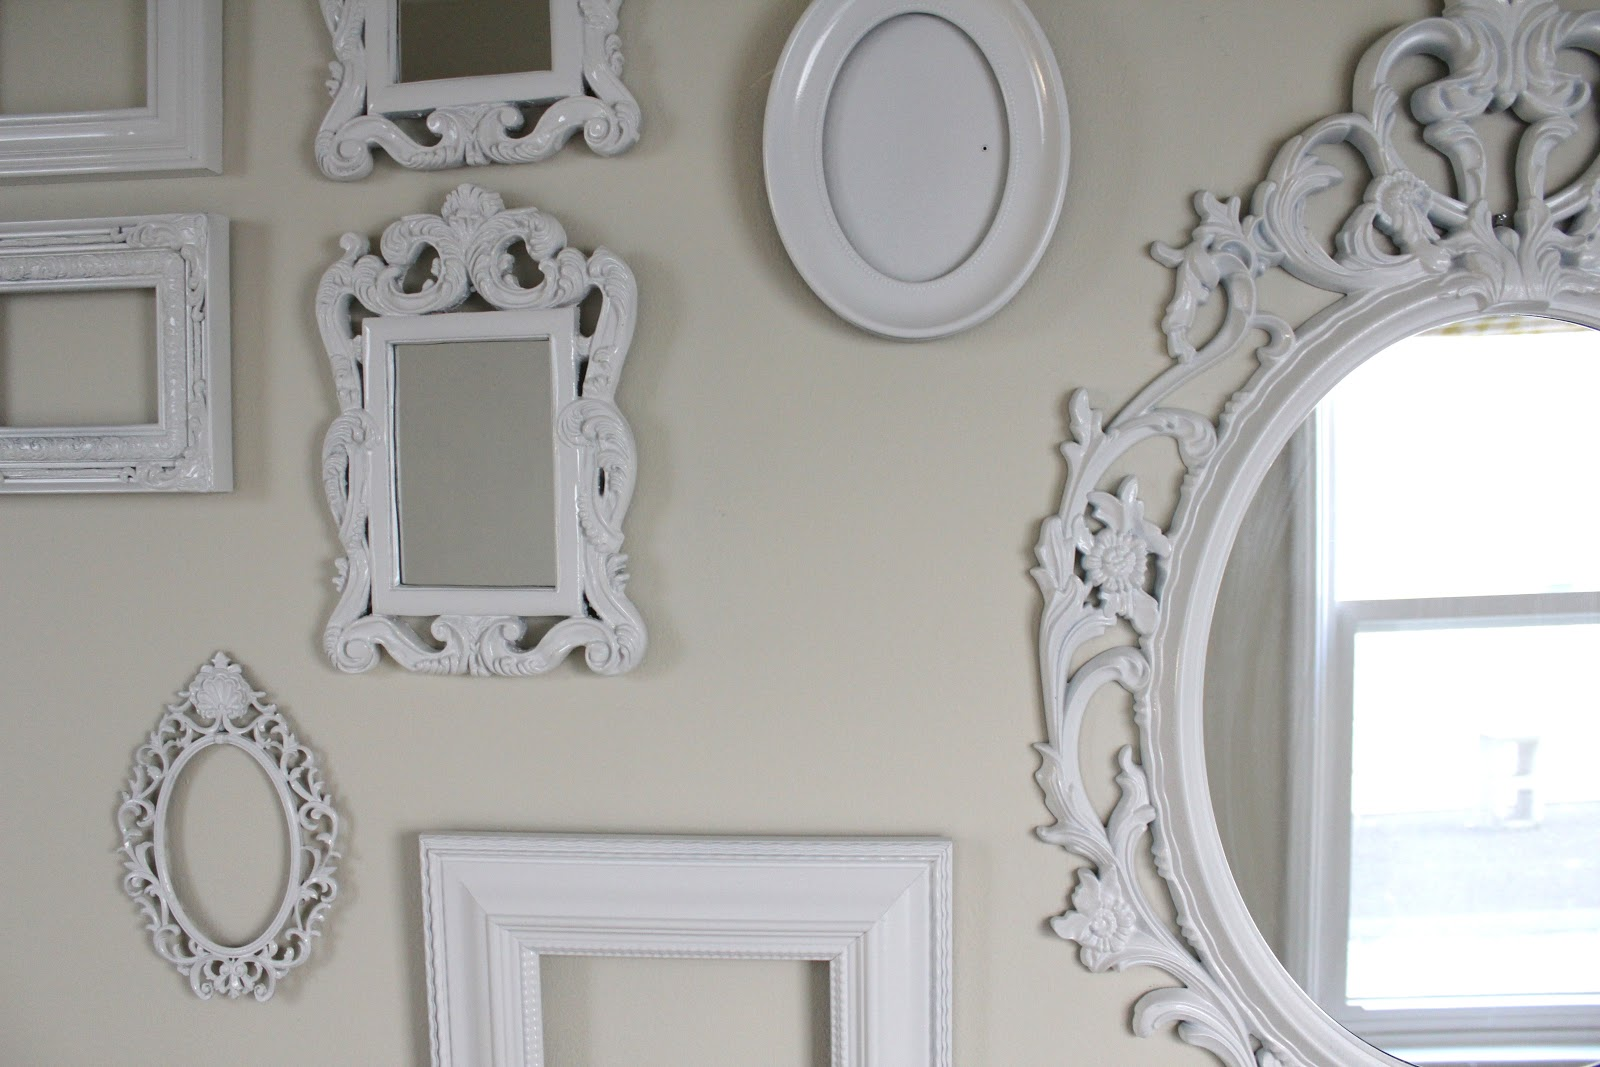 Gallery Wall Of White Ornate Frames